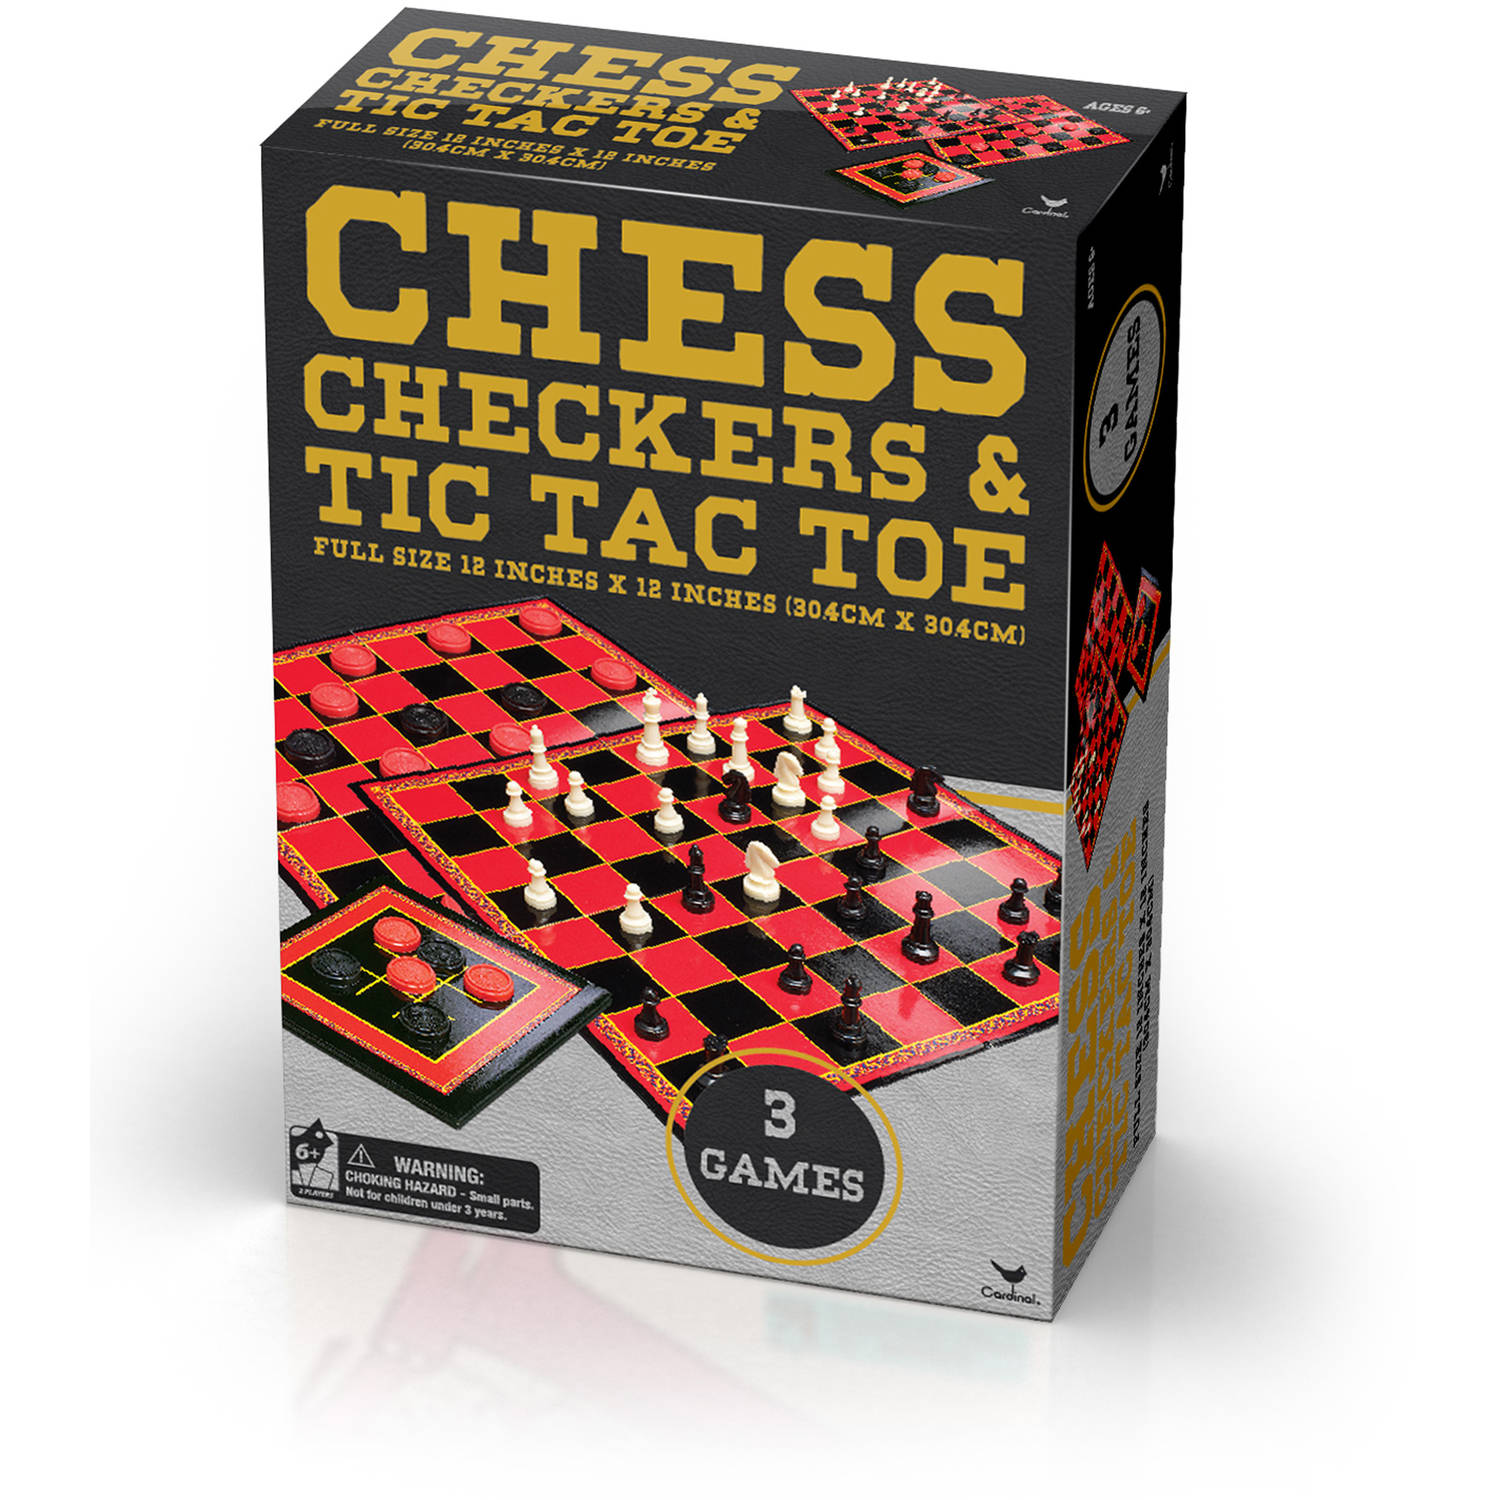 Cardinal Classic Games Chess, Checkers and Tic Tac Toe in Gold Foil Box